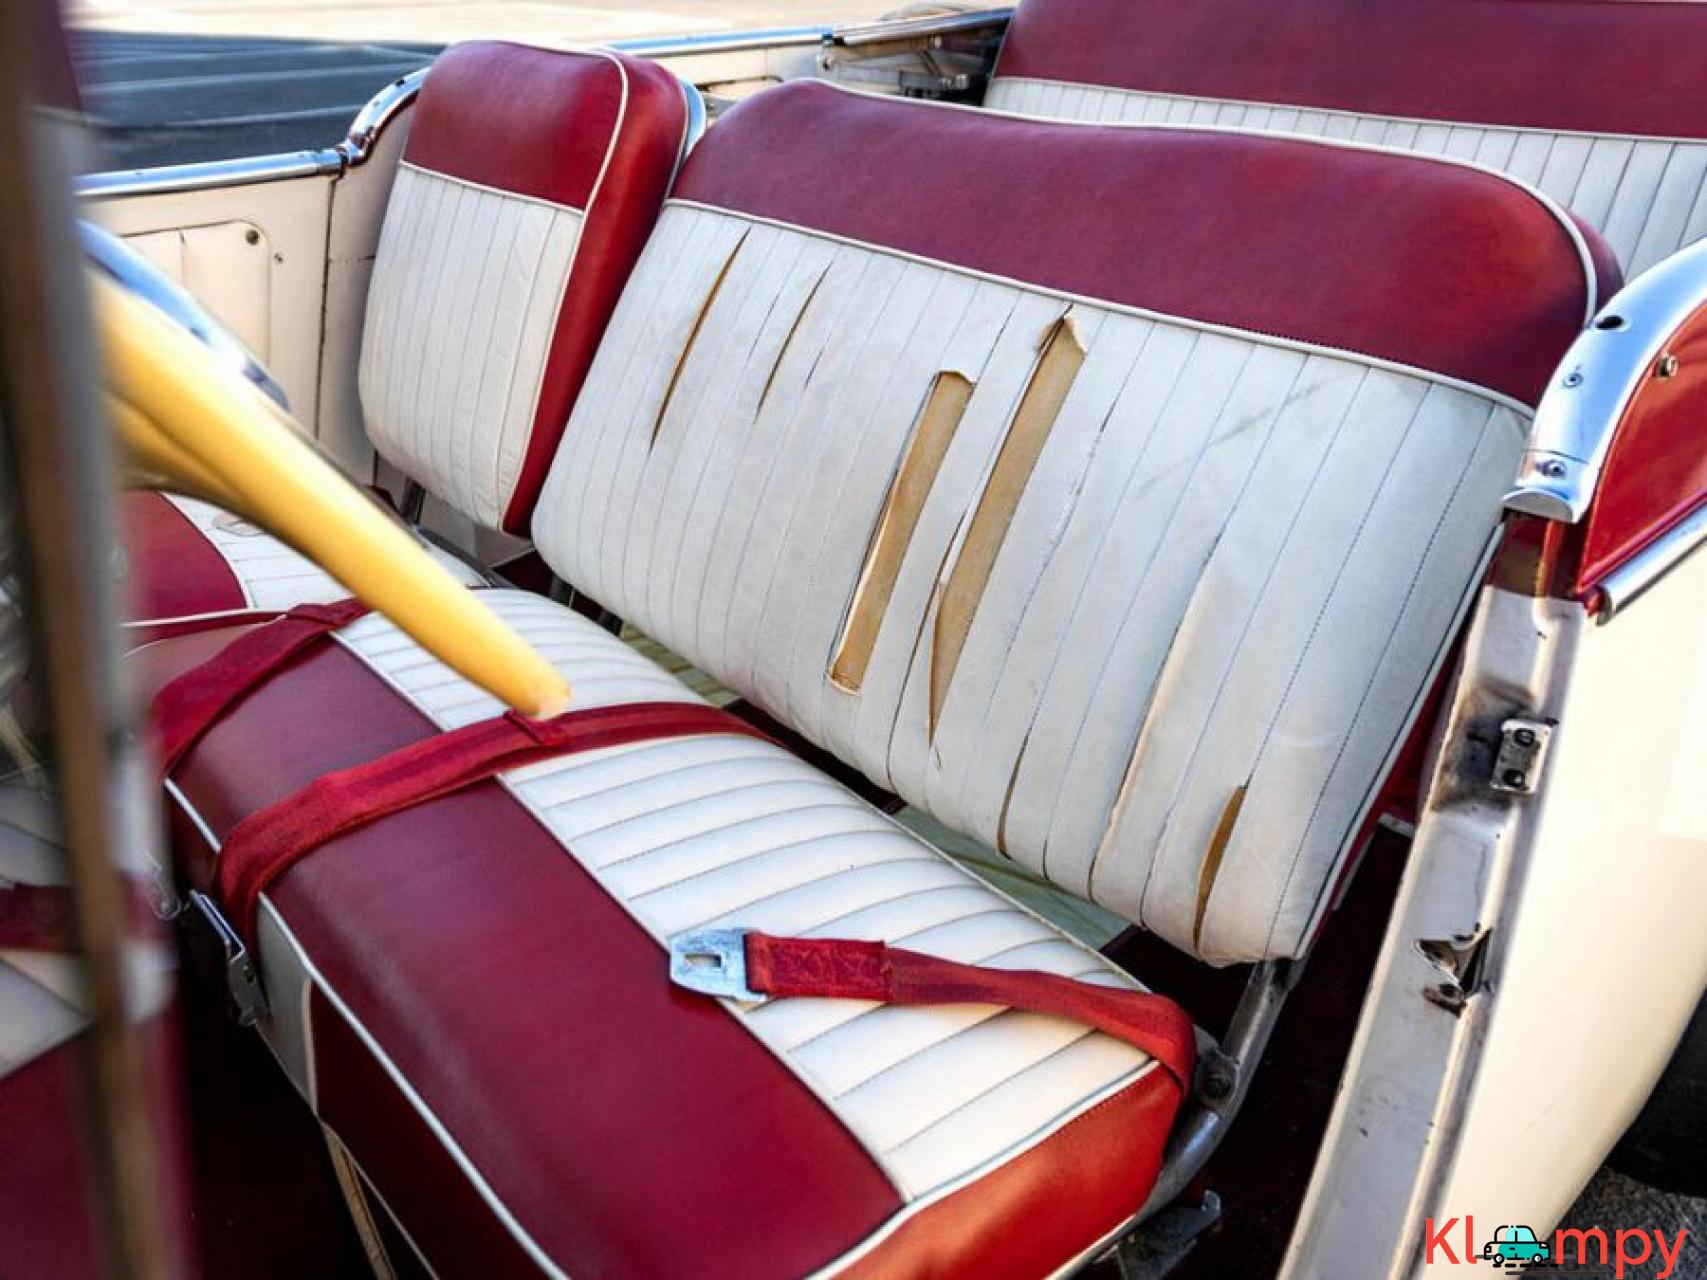 1951 Willys Jeepster Convertible 134.2 cu in 2.2 L - 9/17